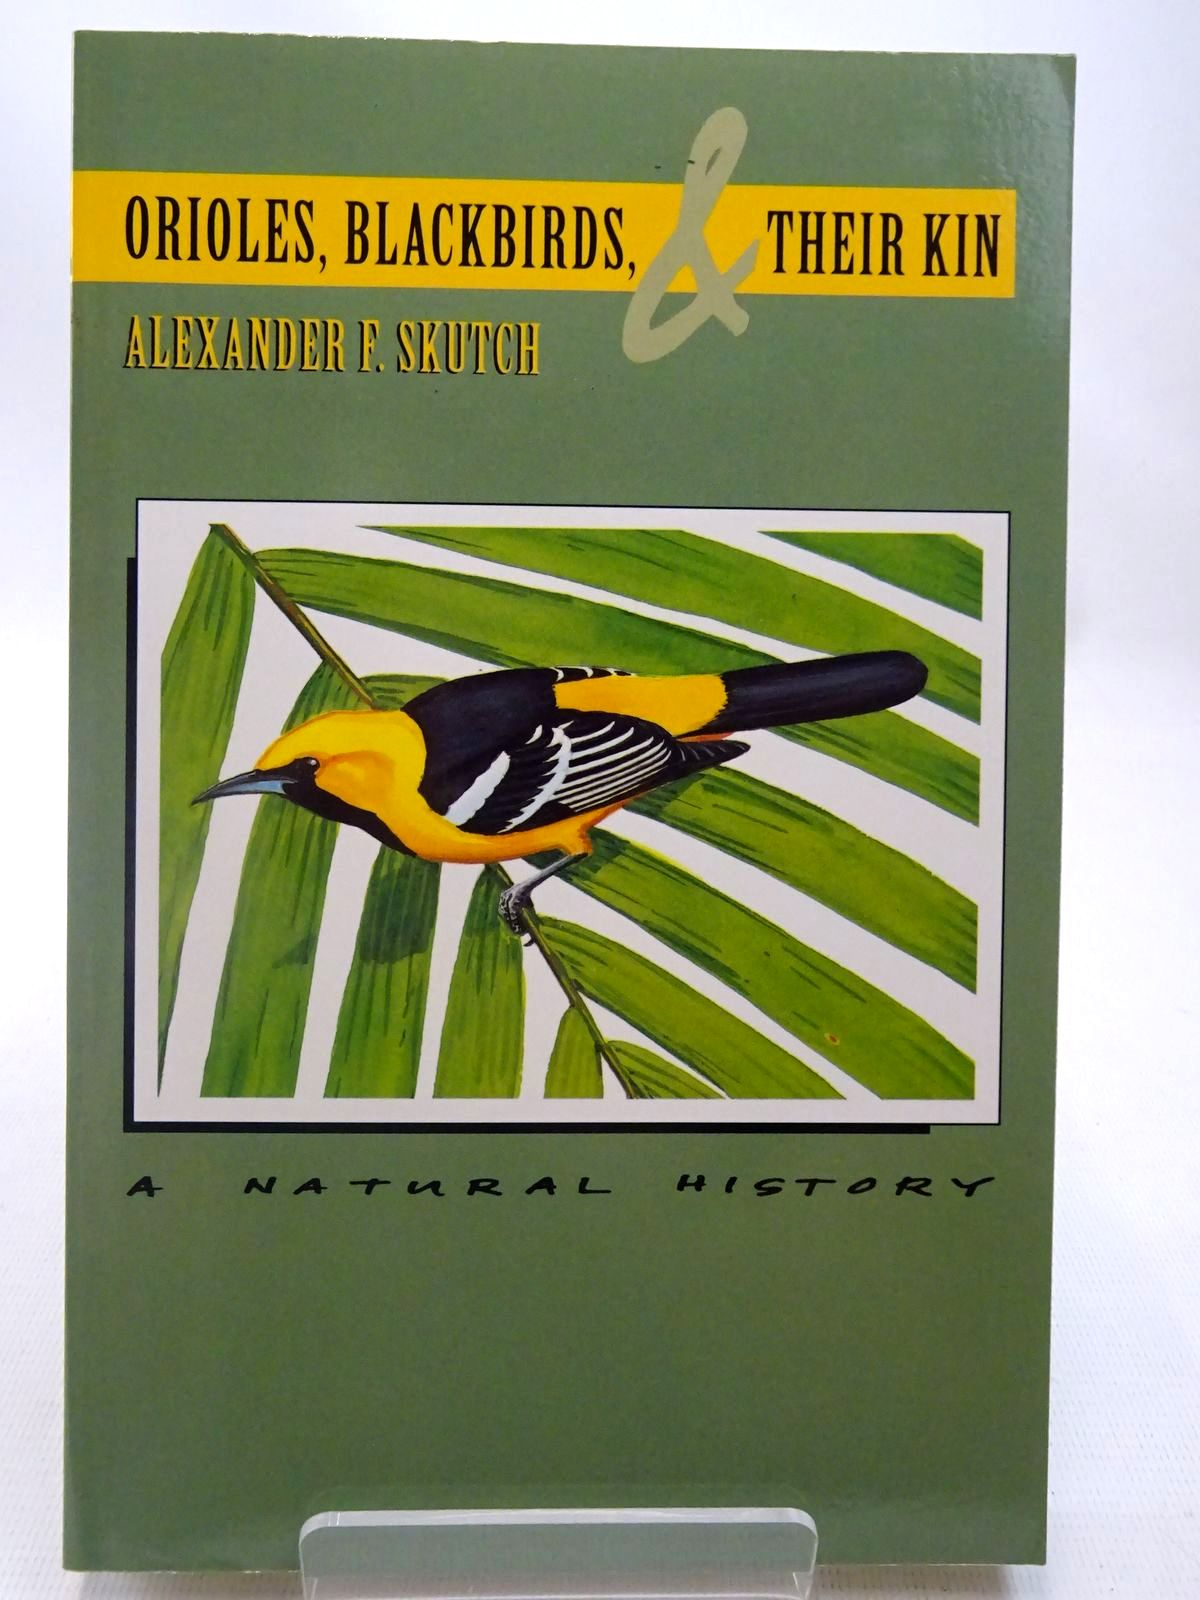 Photo of ORIOLES, BLACKBIRDS AND THEIR KIN A NATURAL HISTORY written by Skutch, Alexander F. illustrated by Gardner, Dana published by University of Arizona Press (STOCK CODE: 2127525)  for sale by Stella & Rose's Books